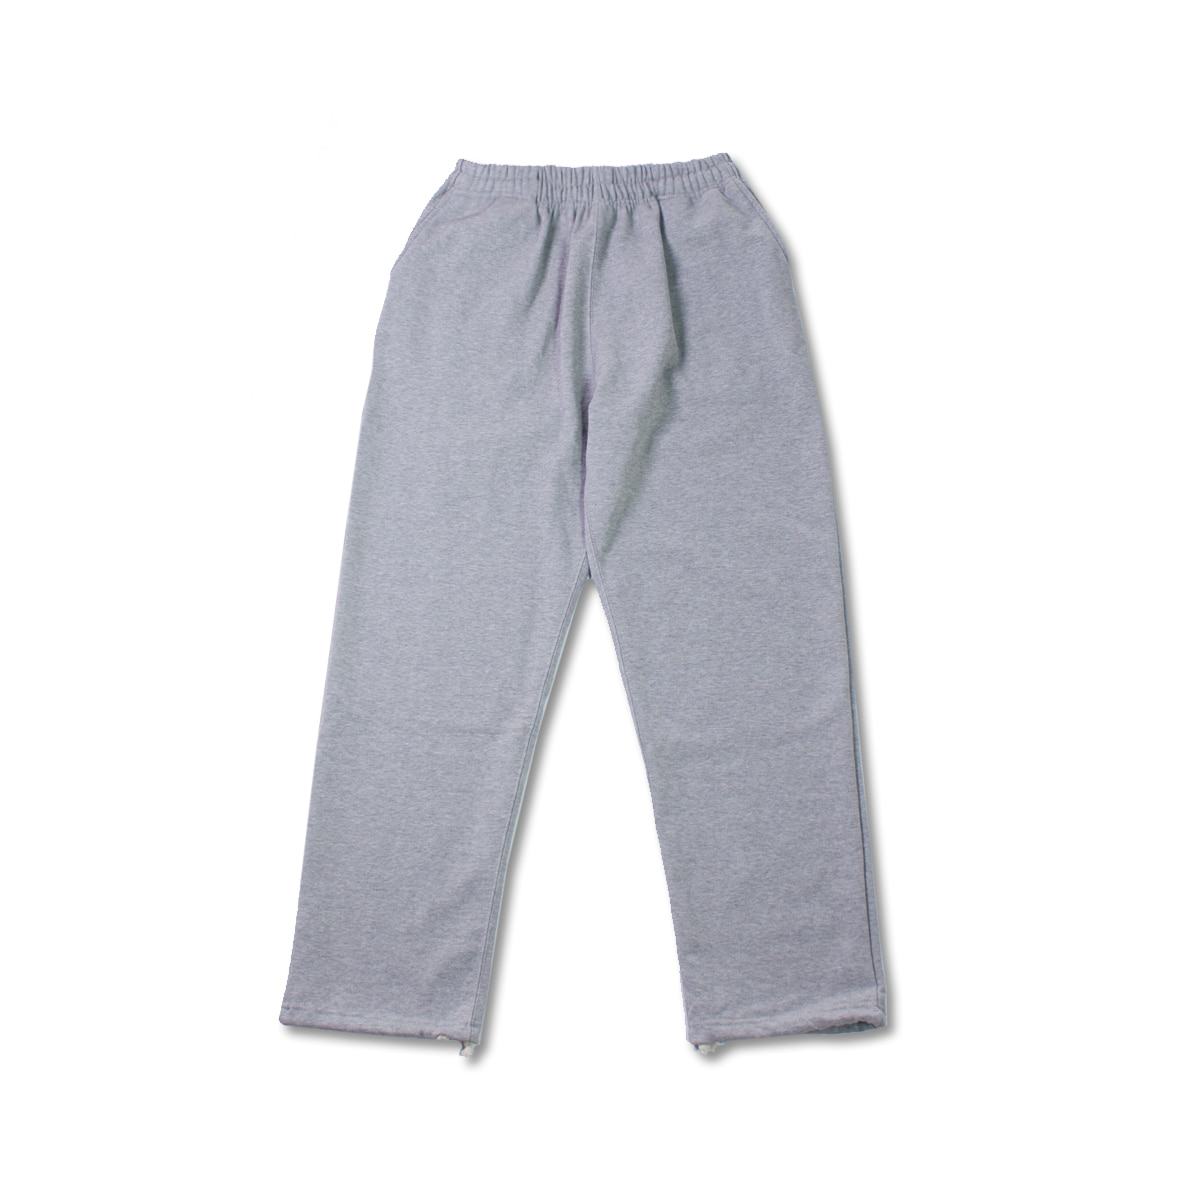 [8DIVISION] 2WAY SWEATPANTS 'GREY'